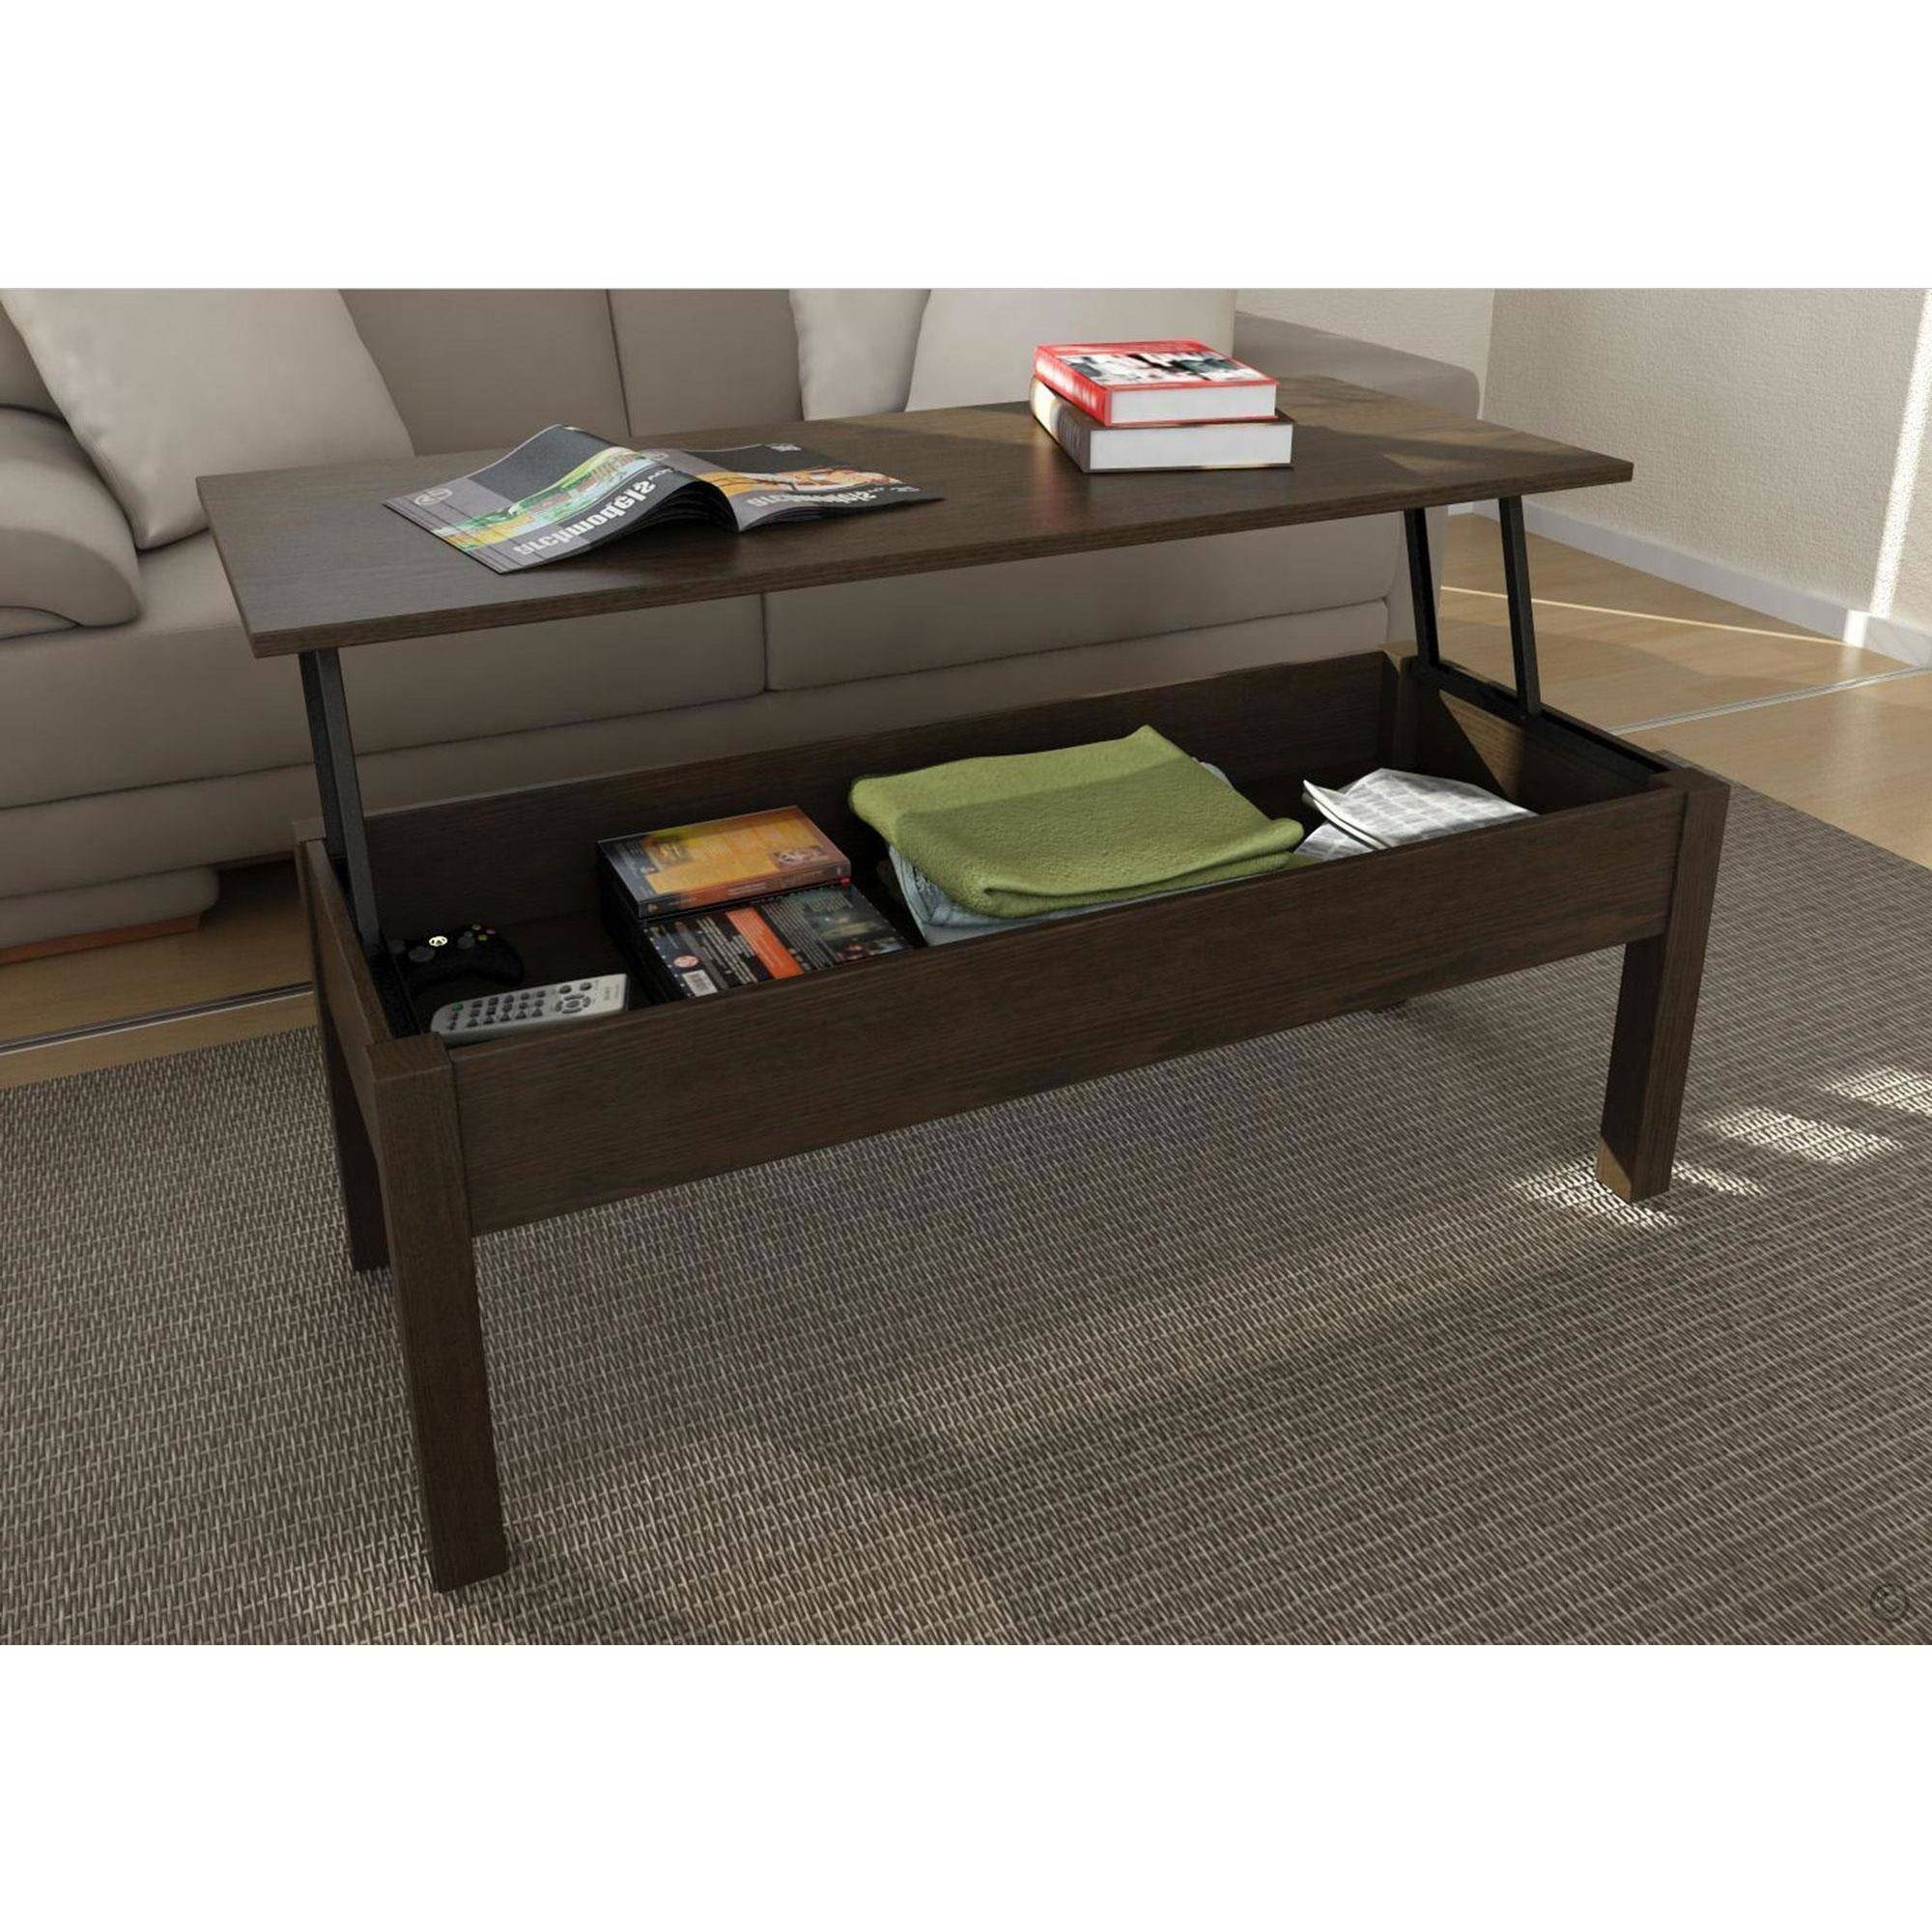 Mainstays Lift Top Coffee Table, Multiple Colors – Walmart Inside Coffee Tables Extendable Top (View 18 of 30)